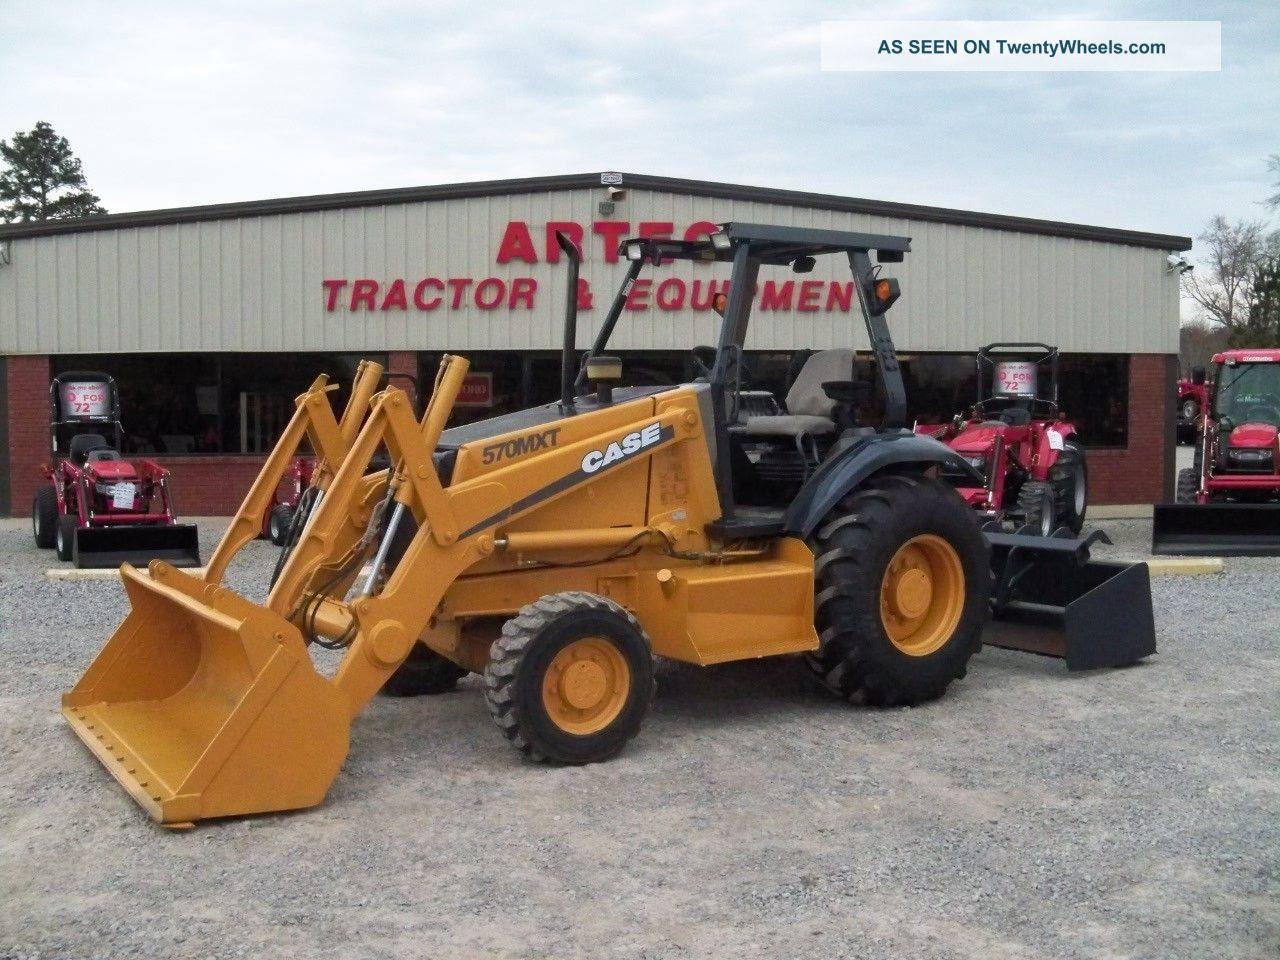 2005 Case 570m Xt Skip Loader - Landscape Tractor - 4x4 - Hydraulic Box Blade Crawler Dozers & Loaders photo